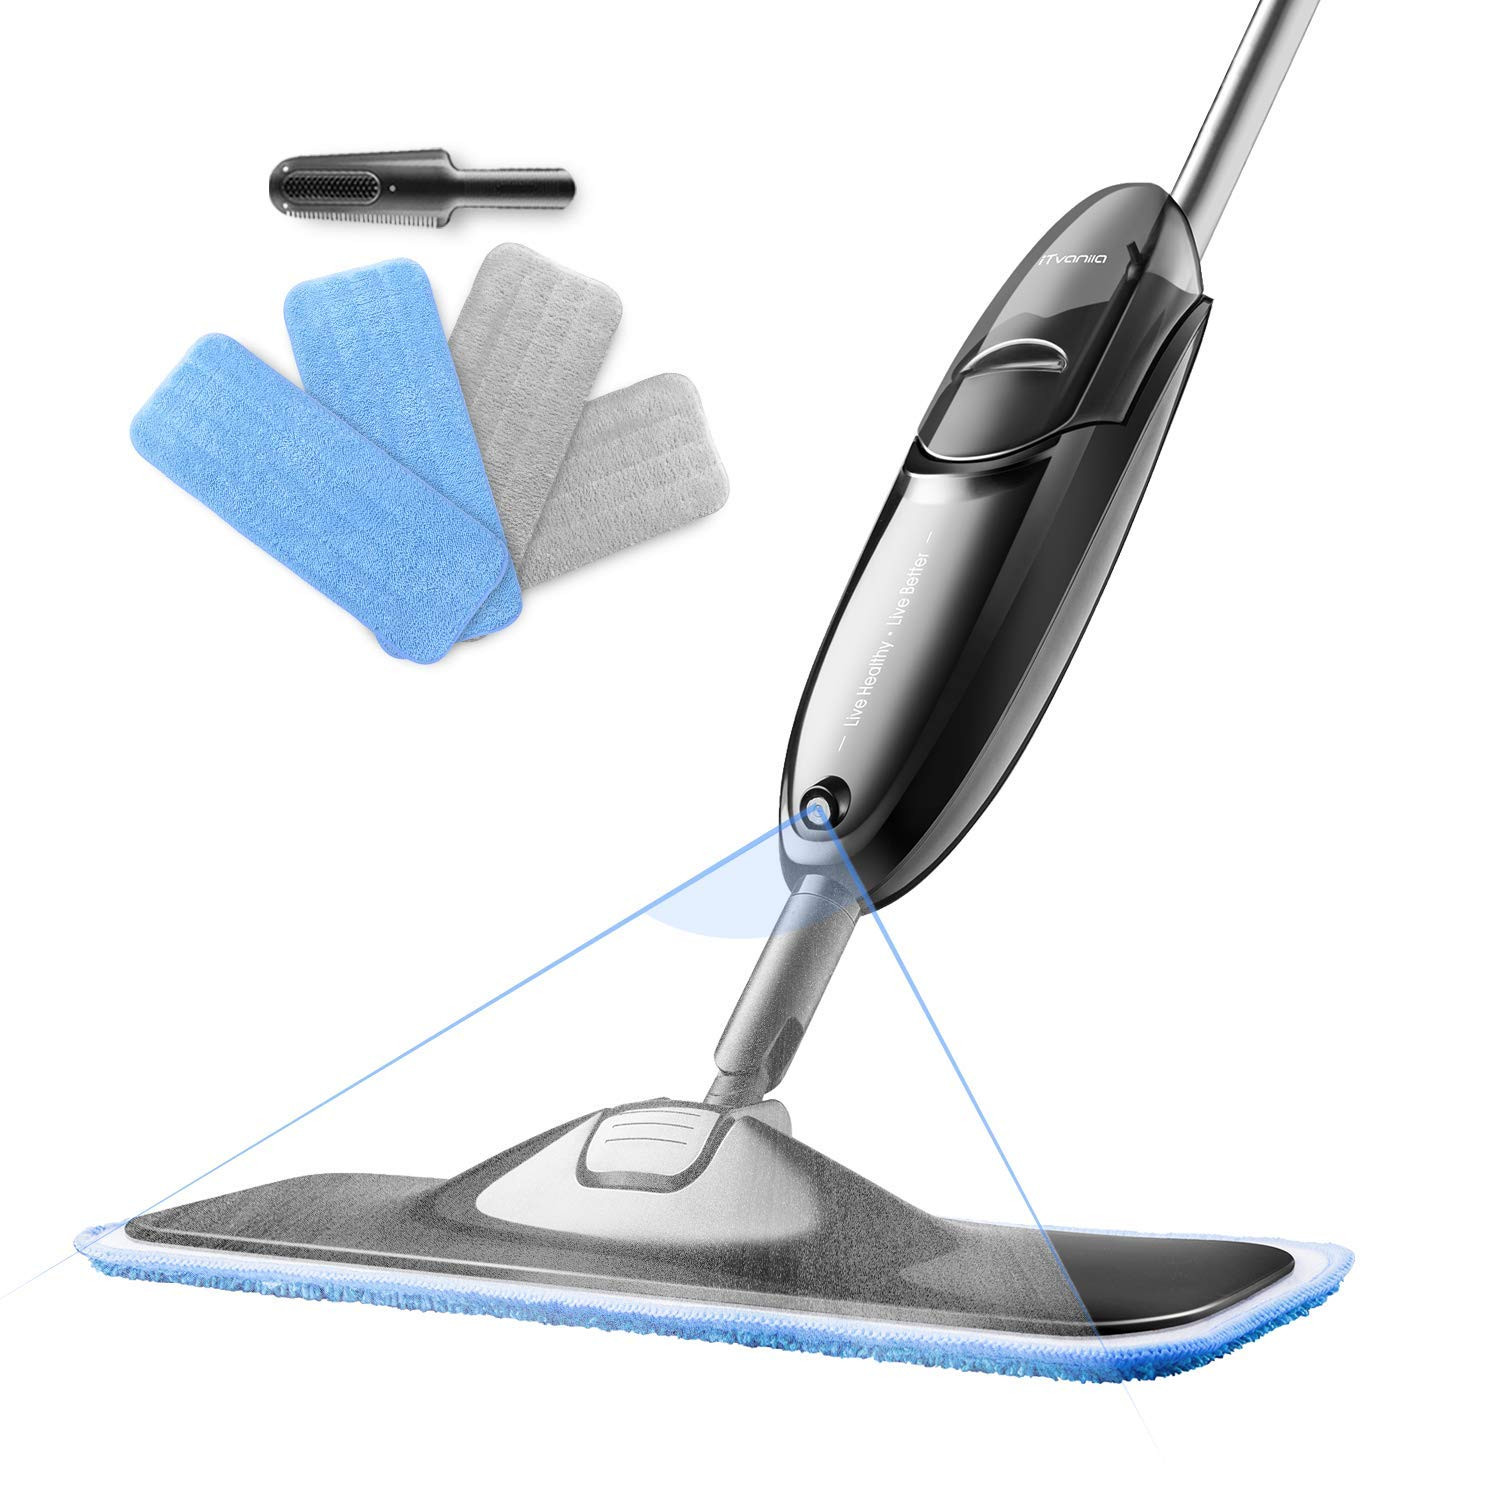 hardwood floor vacuum and mop of amazon com itvanila hardwood floor mop spray microfiber mop with 4 for amazon com itvanila hardwood floor mop spray microfiber mop with 4 pcs reusable microfibre pads 360 degree rotating easy to clean dry wet mop for